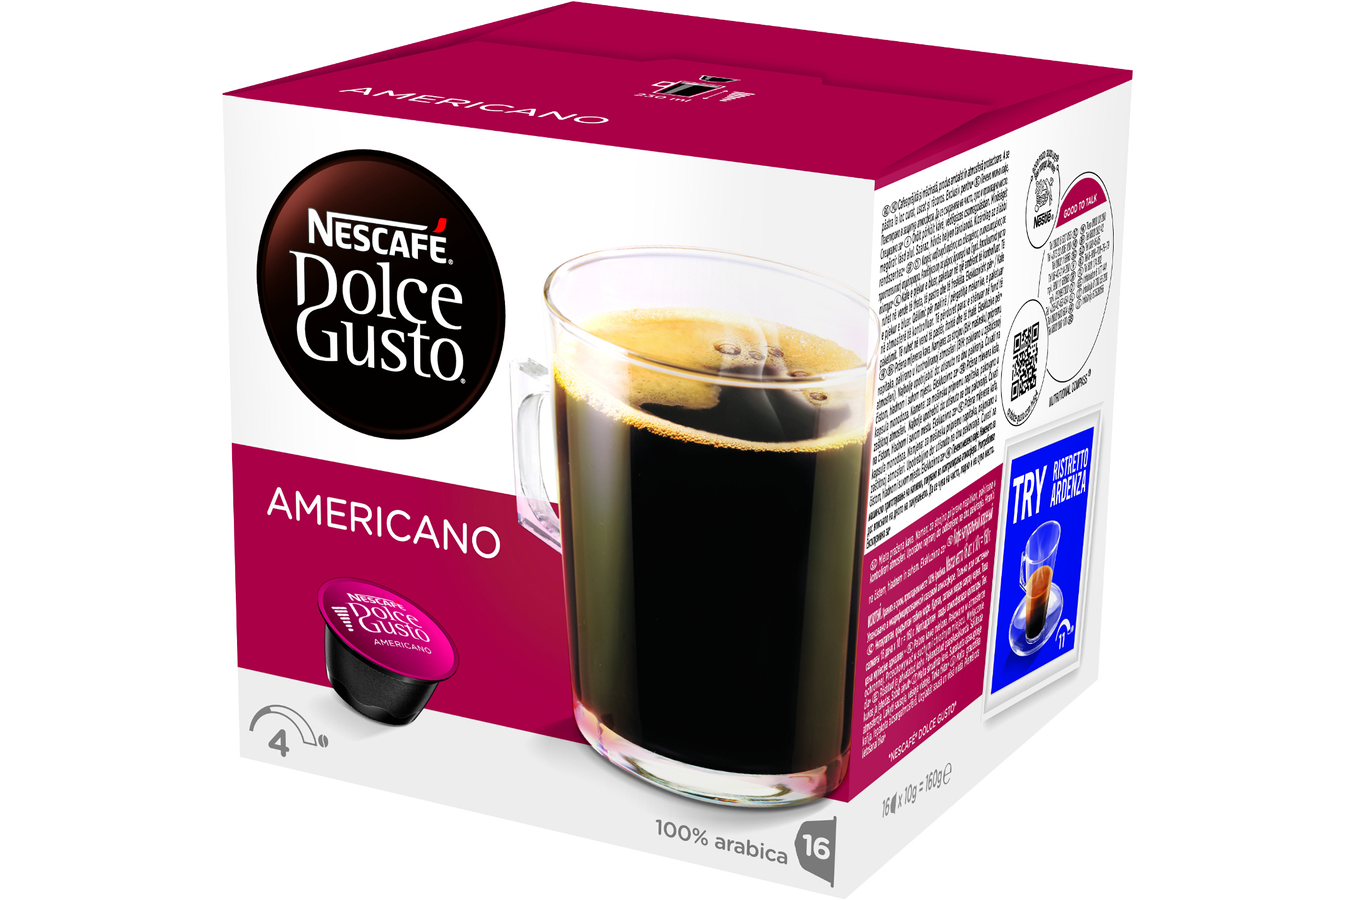 capsule caf dolce gusto espresso americano americano 4042417 darty. Black Bedroom Furniture Sets. Home Design Ideas